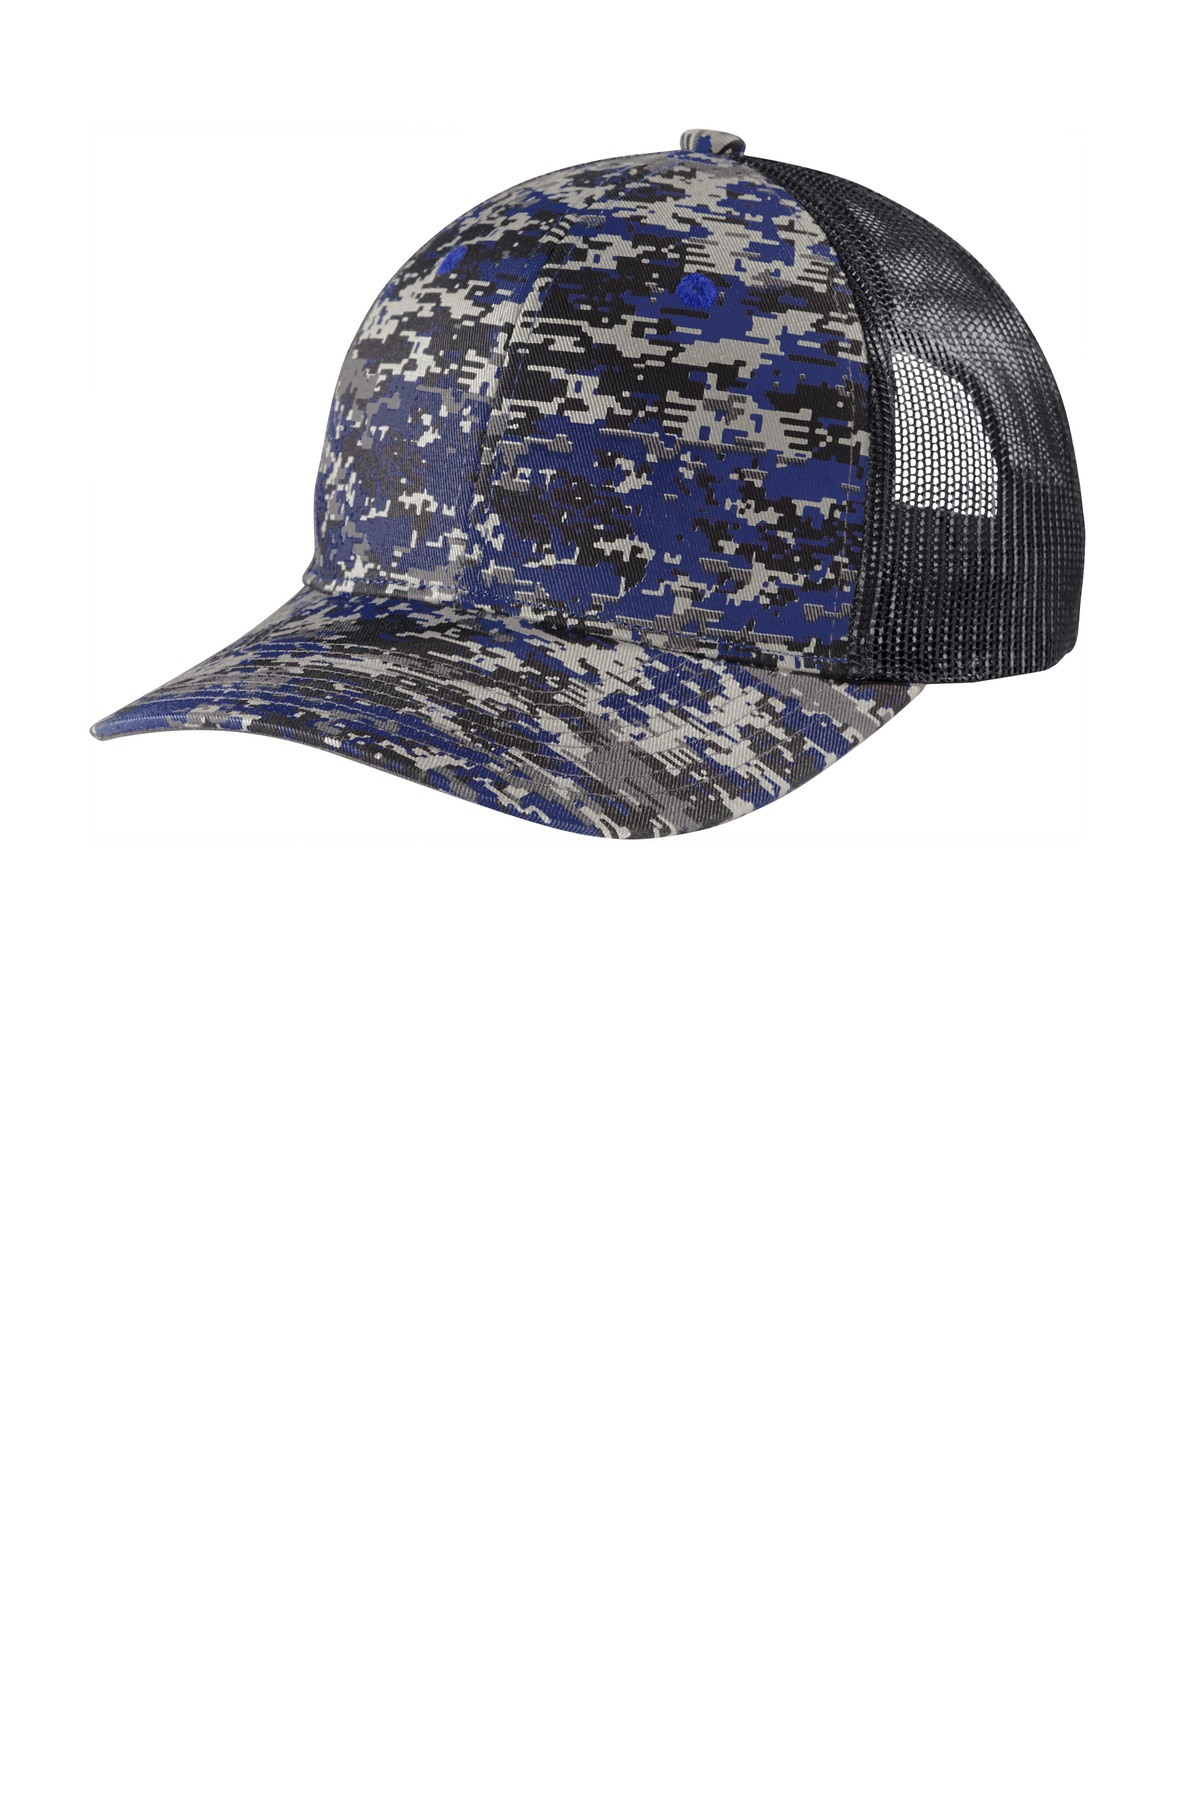 Port Authority  ®  Digi Camo Snapback Trucker Cap C114 - Patriot Blue Digi/ Grey Steel